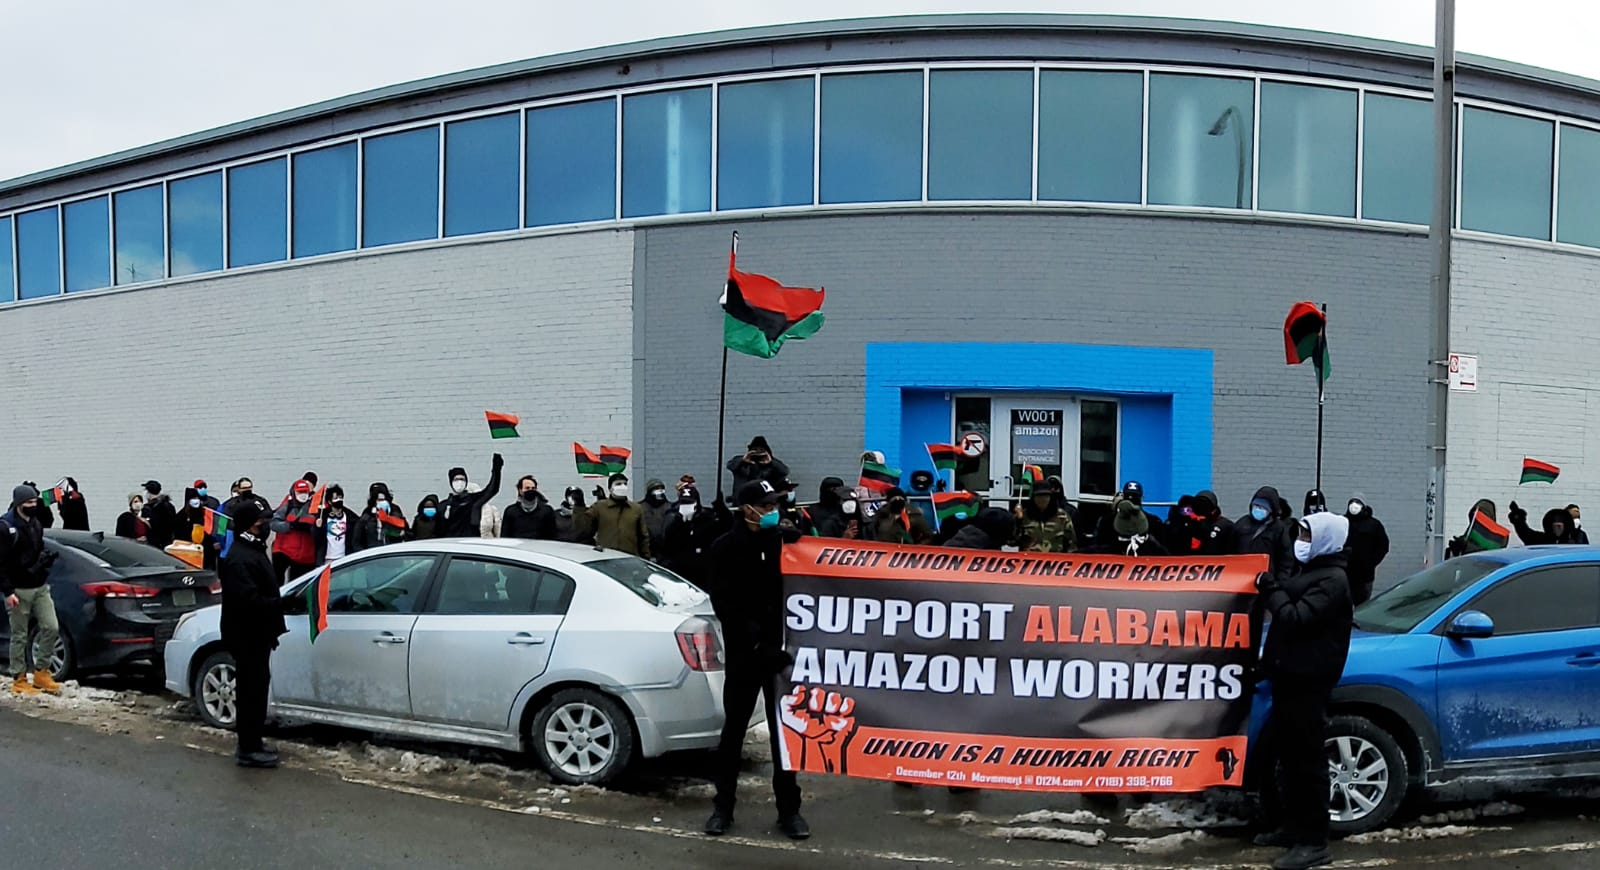 Brooklyn-New-York-Amazon-workers-support-protest-022021-2, Black Workers Matter! Nationwide protests supporting Amazon workers in Alabama from the Bay to Harlem, National News & Views Photo Gallery